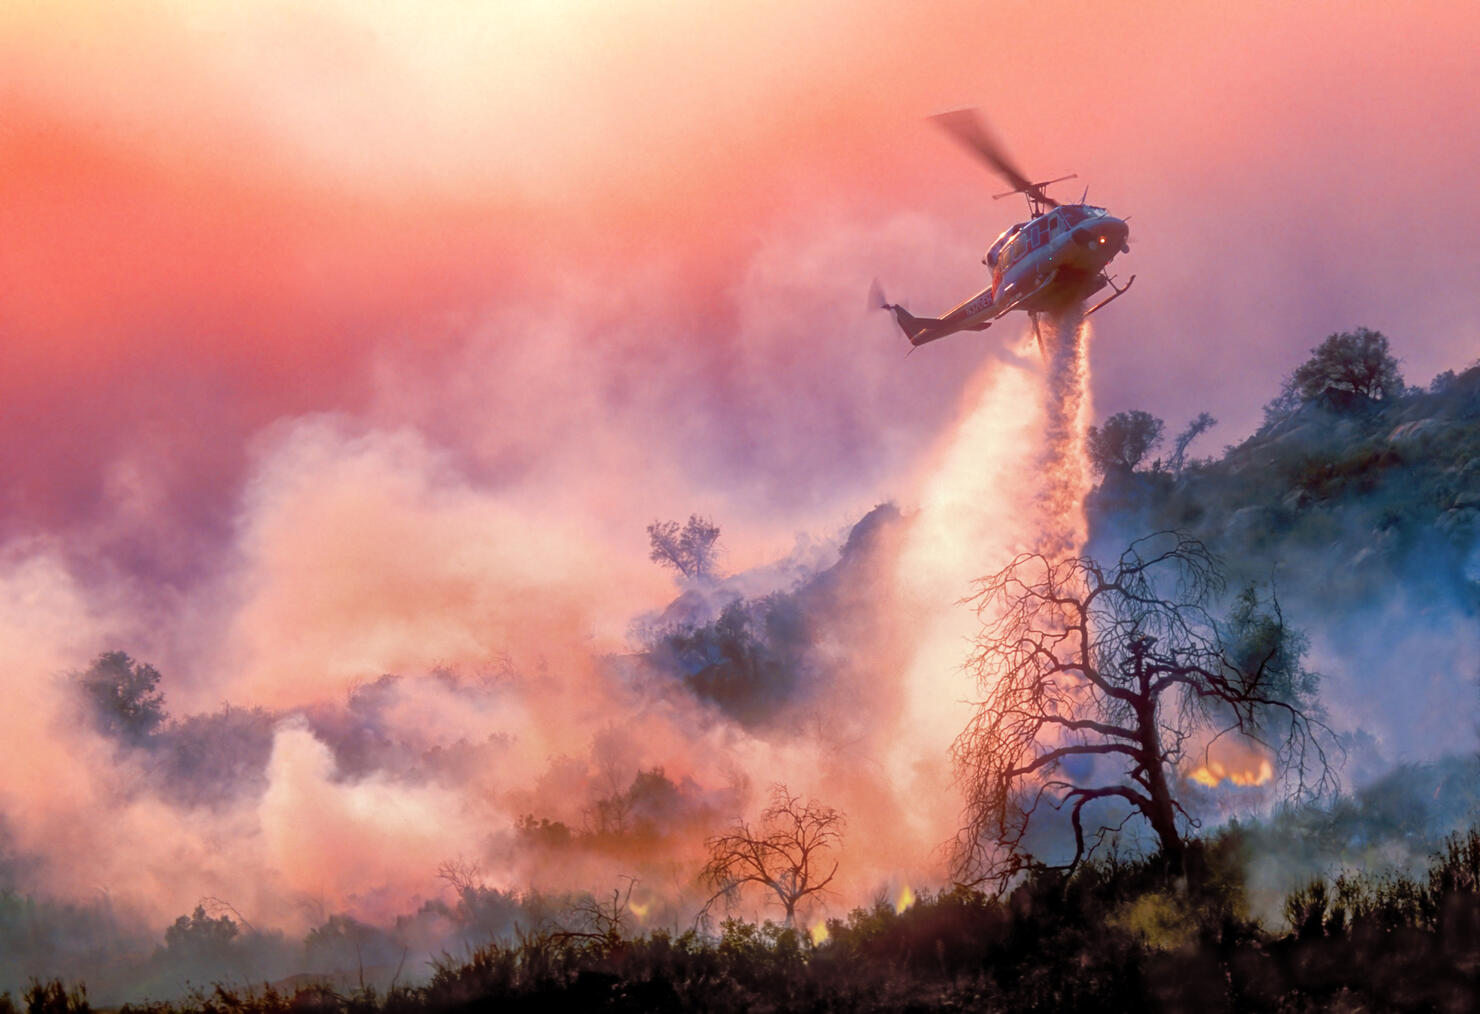 Helicopter Water-Drop on California Wildfire